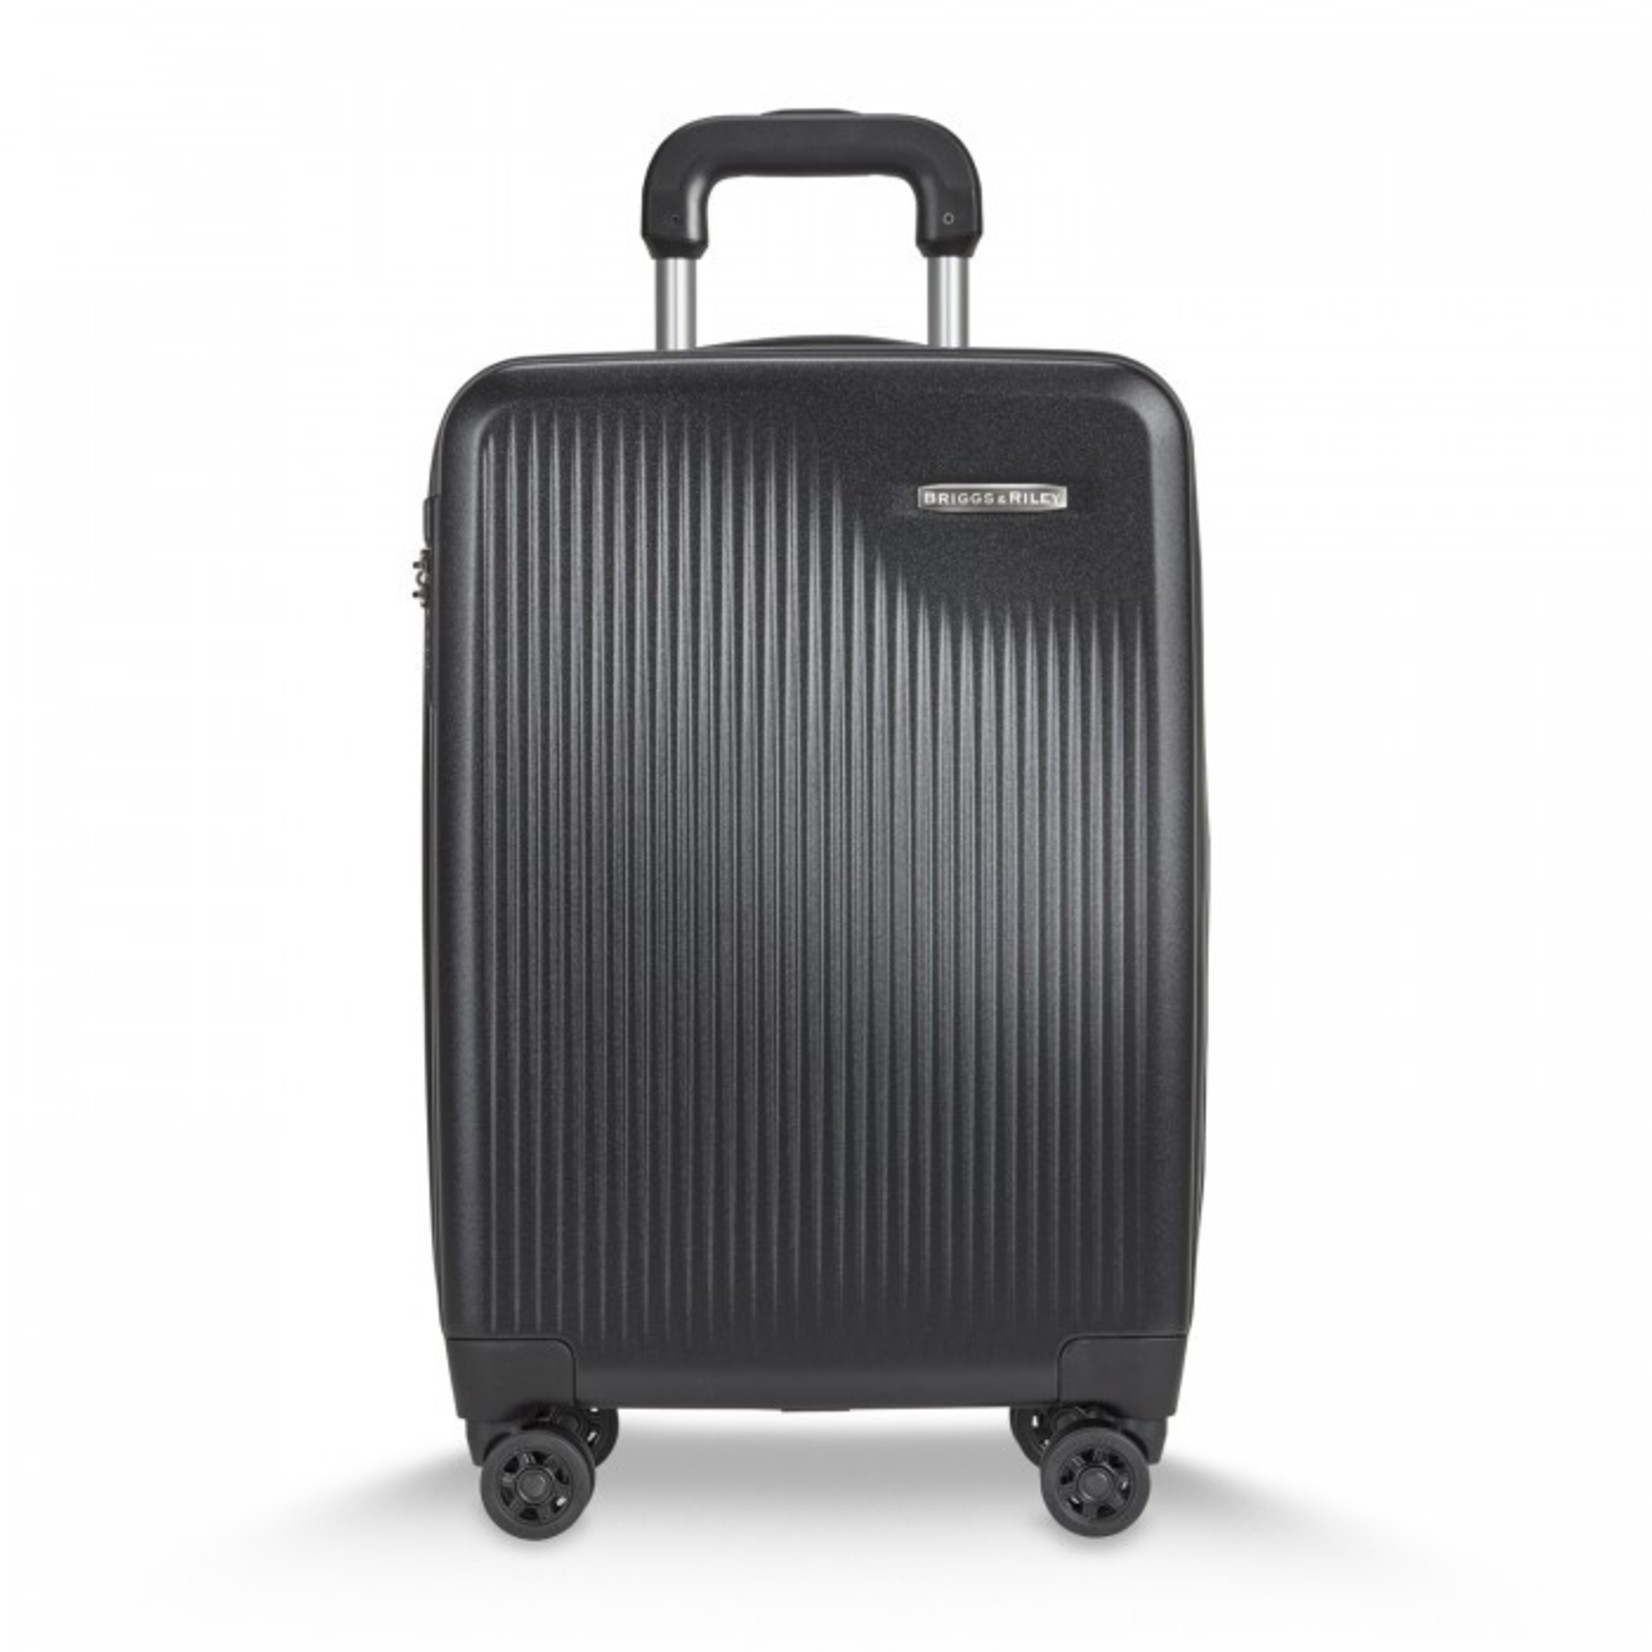 BRIGGS & RILEY SYMPATICO EXPANDABLE INTERNATIONAL CARRY-ON